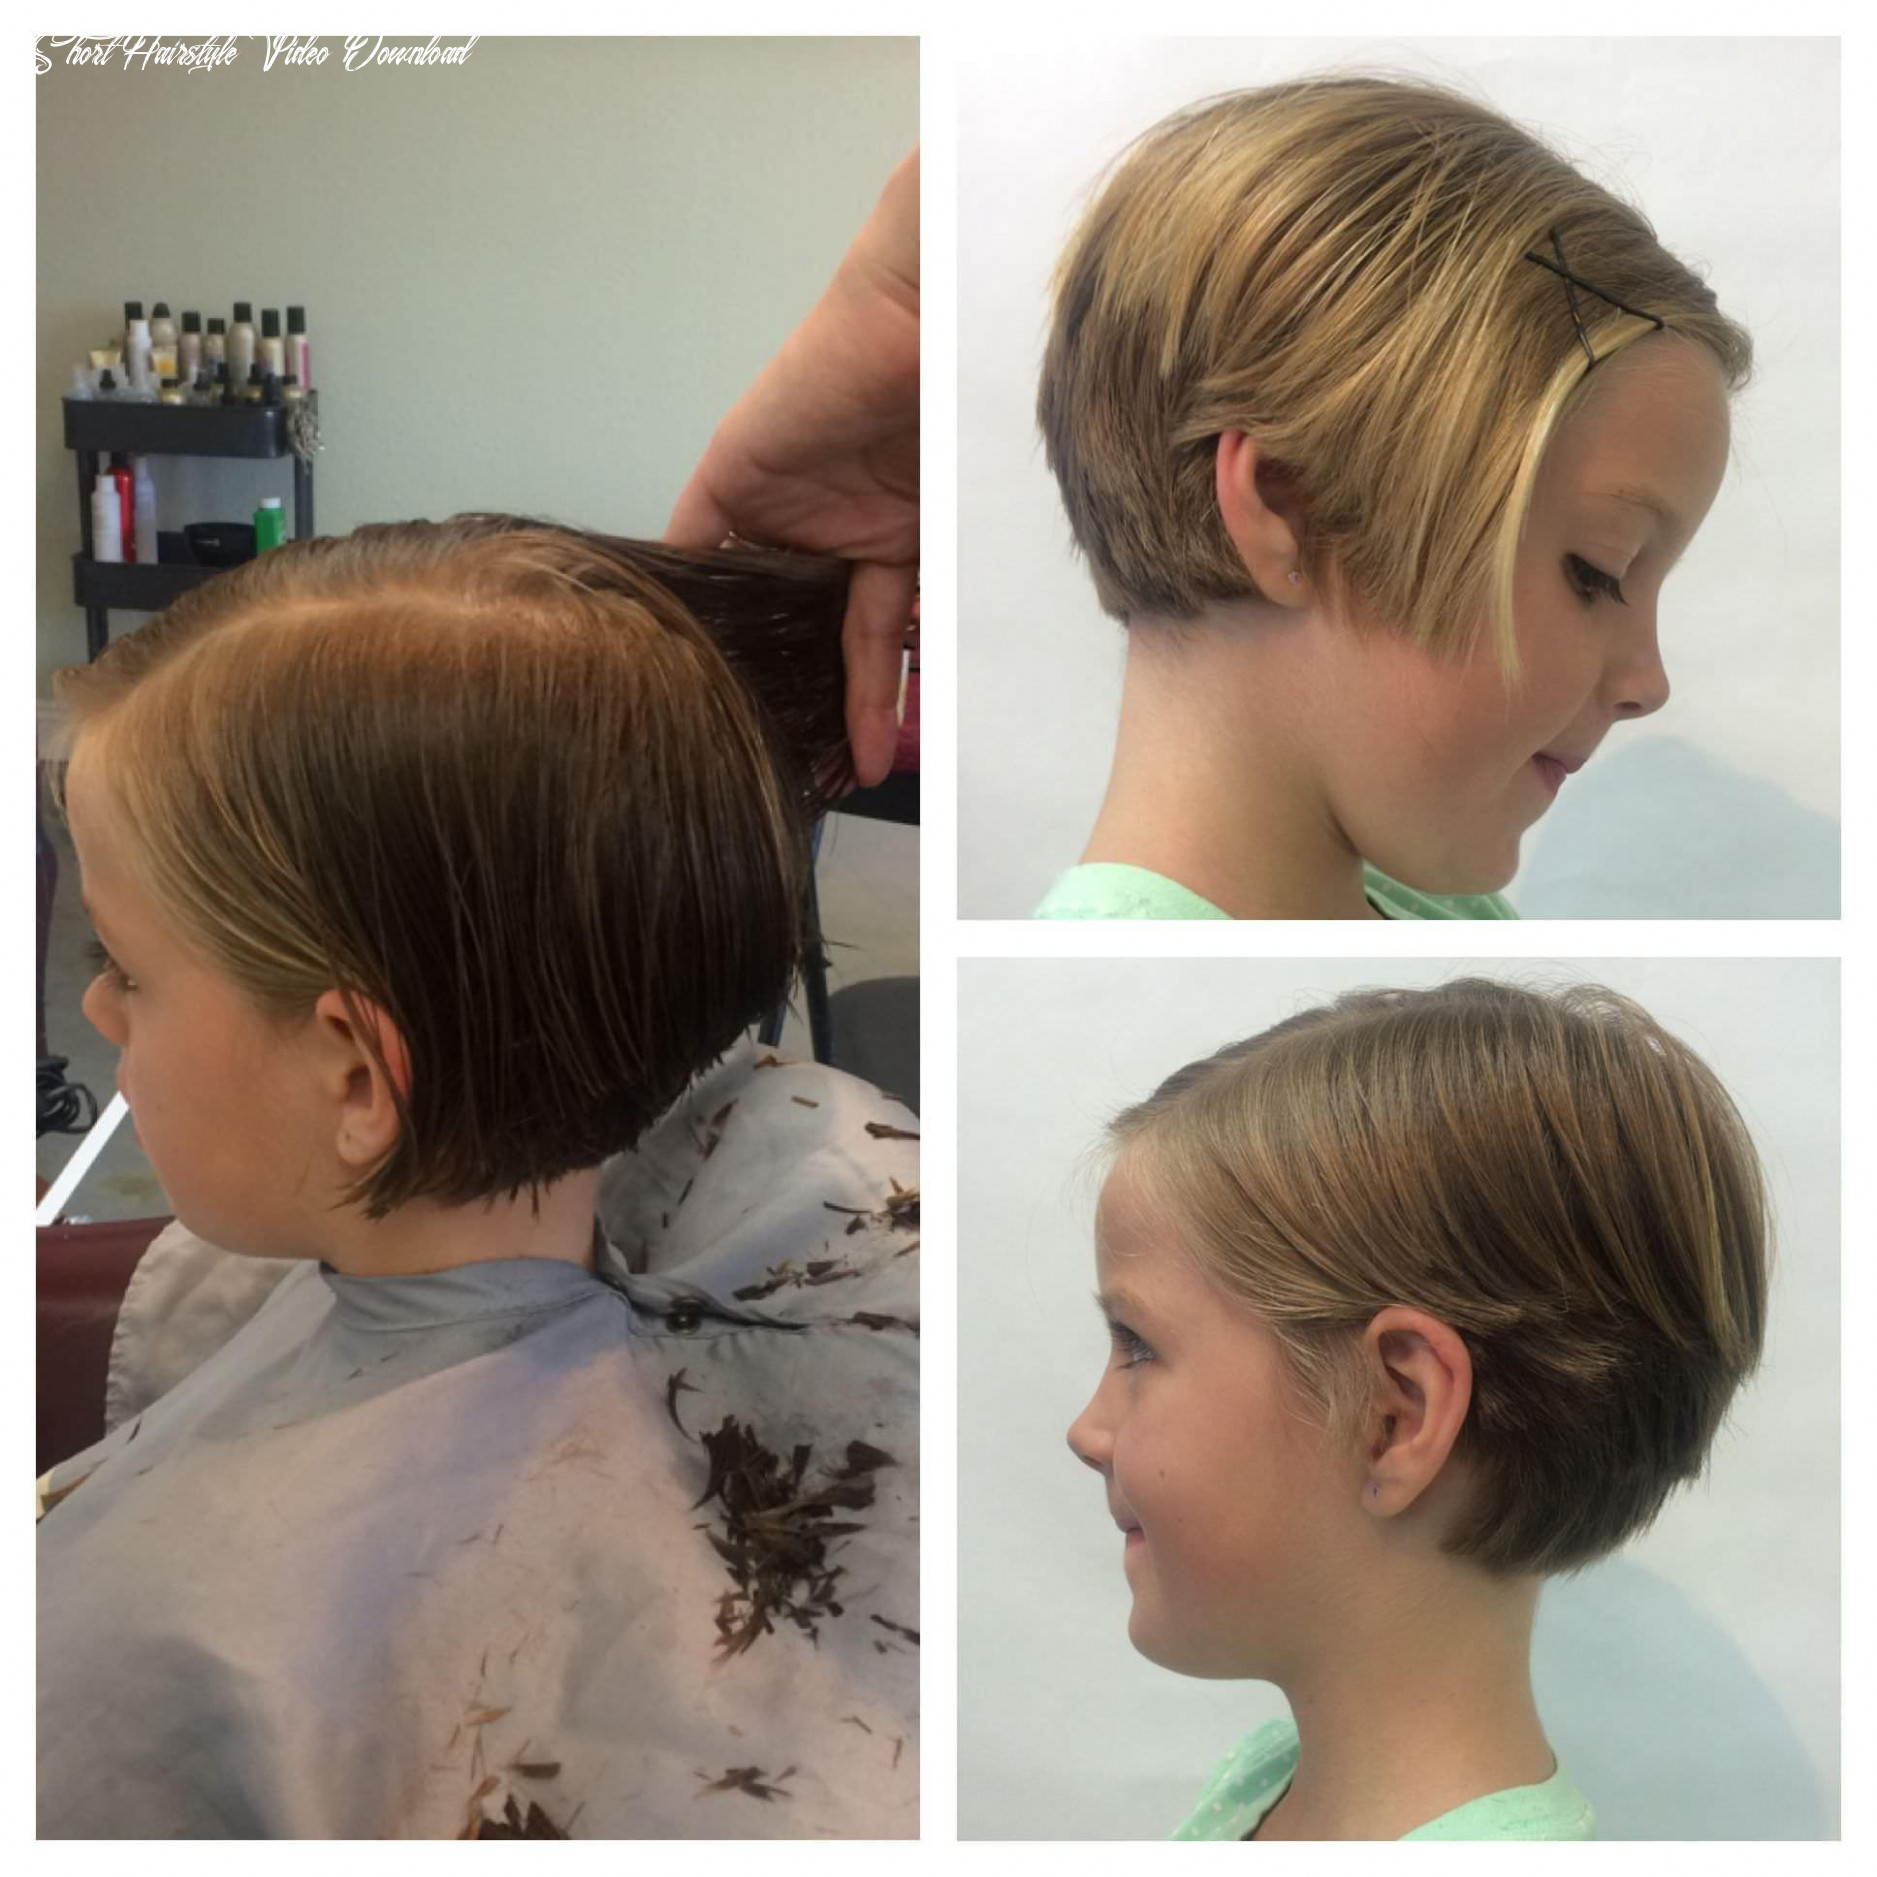 Short hairstyle for girl child for Android - APK Download